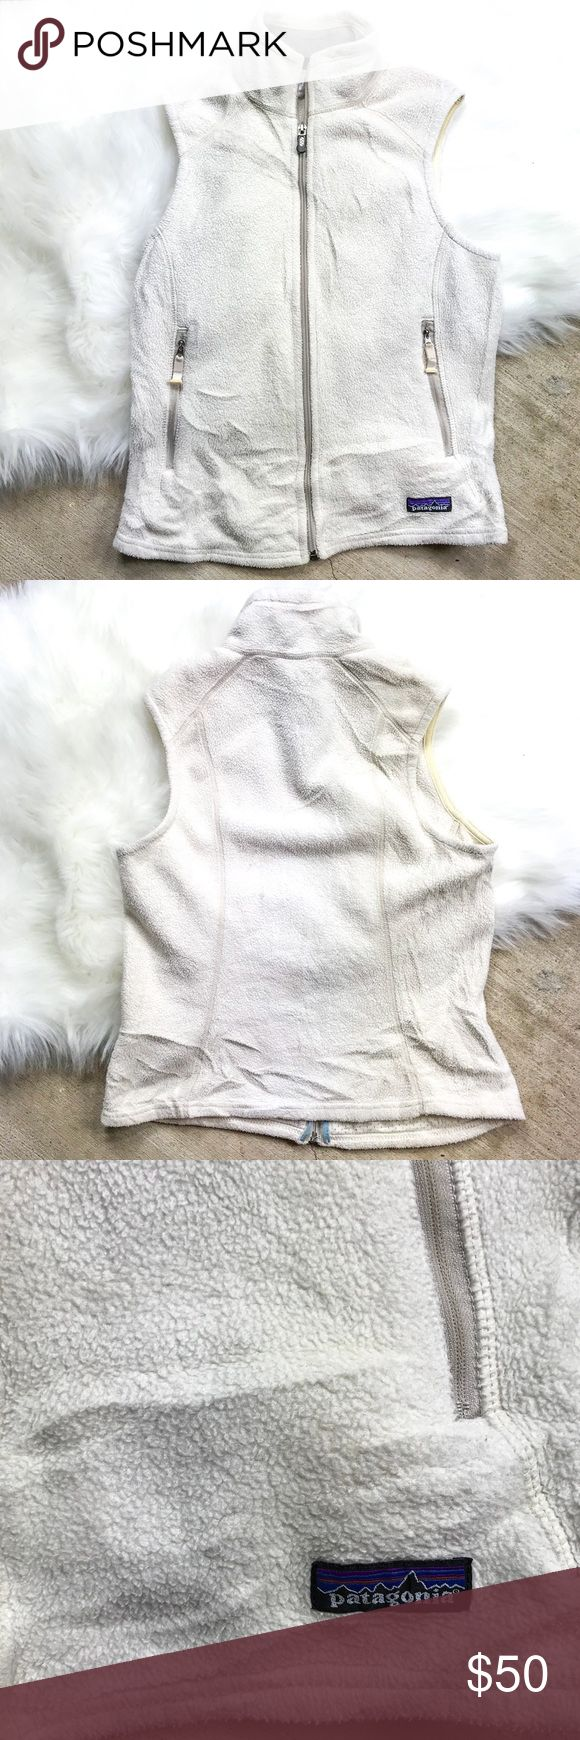 •Patagonia• Fleece Vest Gently used, no stains or tears. Zipper works. Patagonia Jackets & Coats Vests